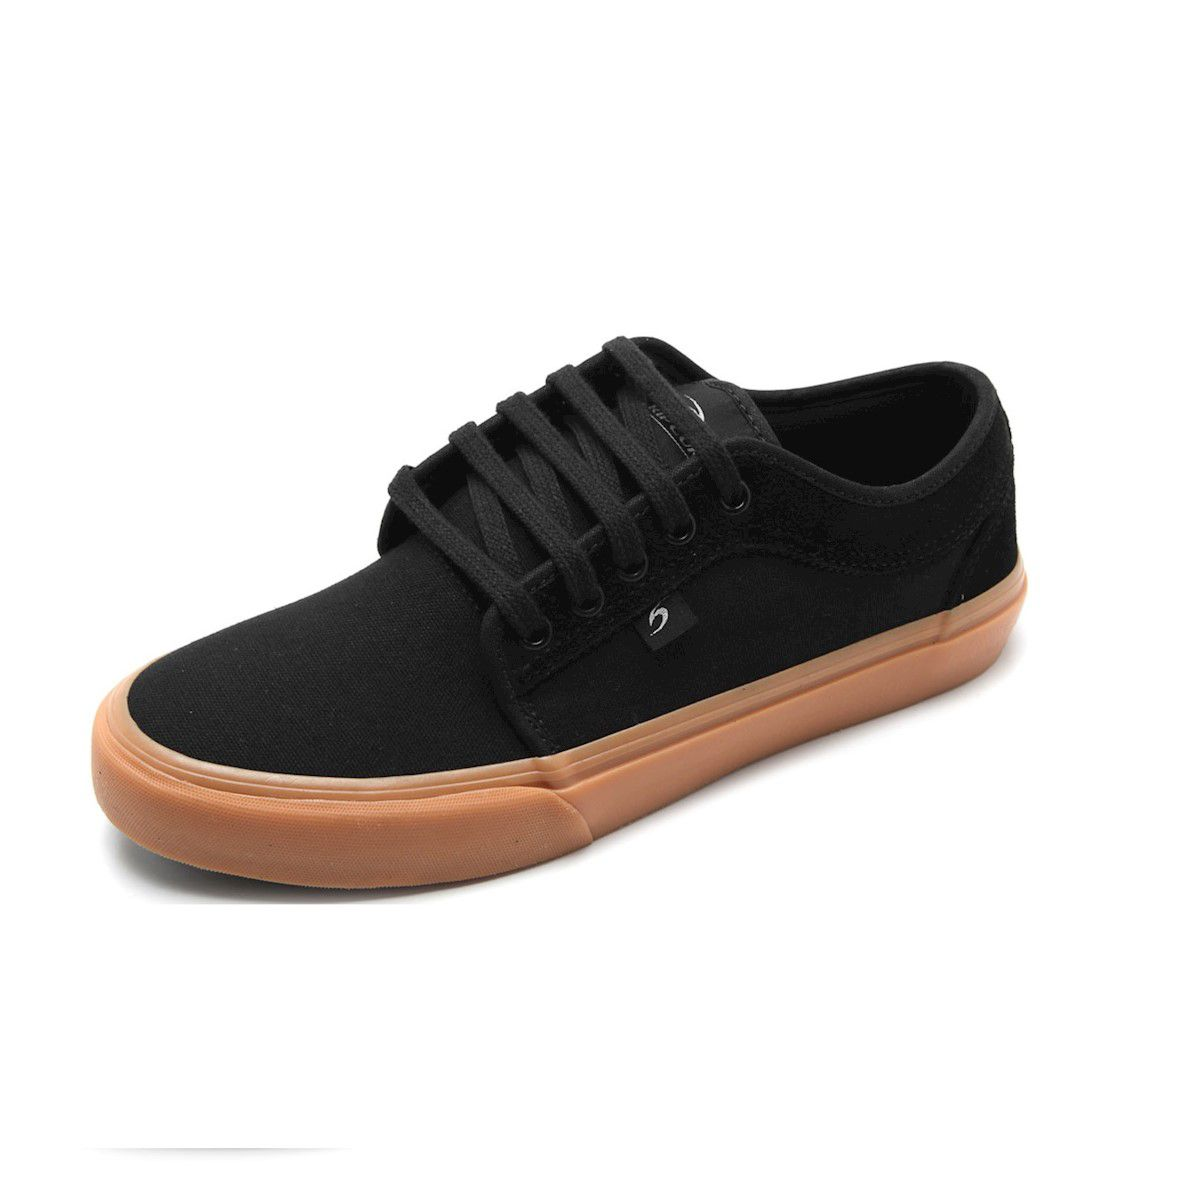 Tenis Rip Curl The Wedge Black Gun